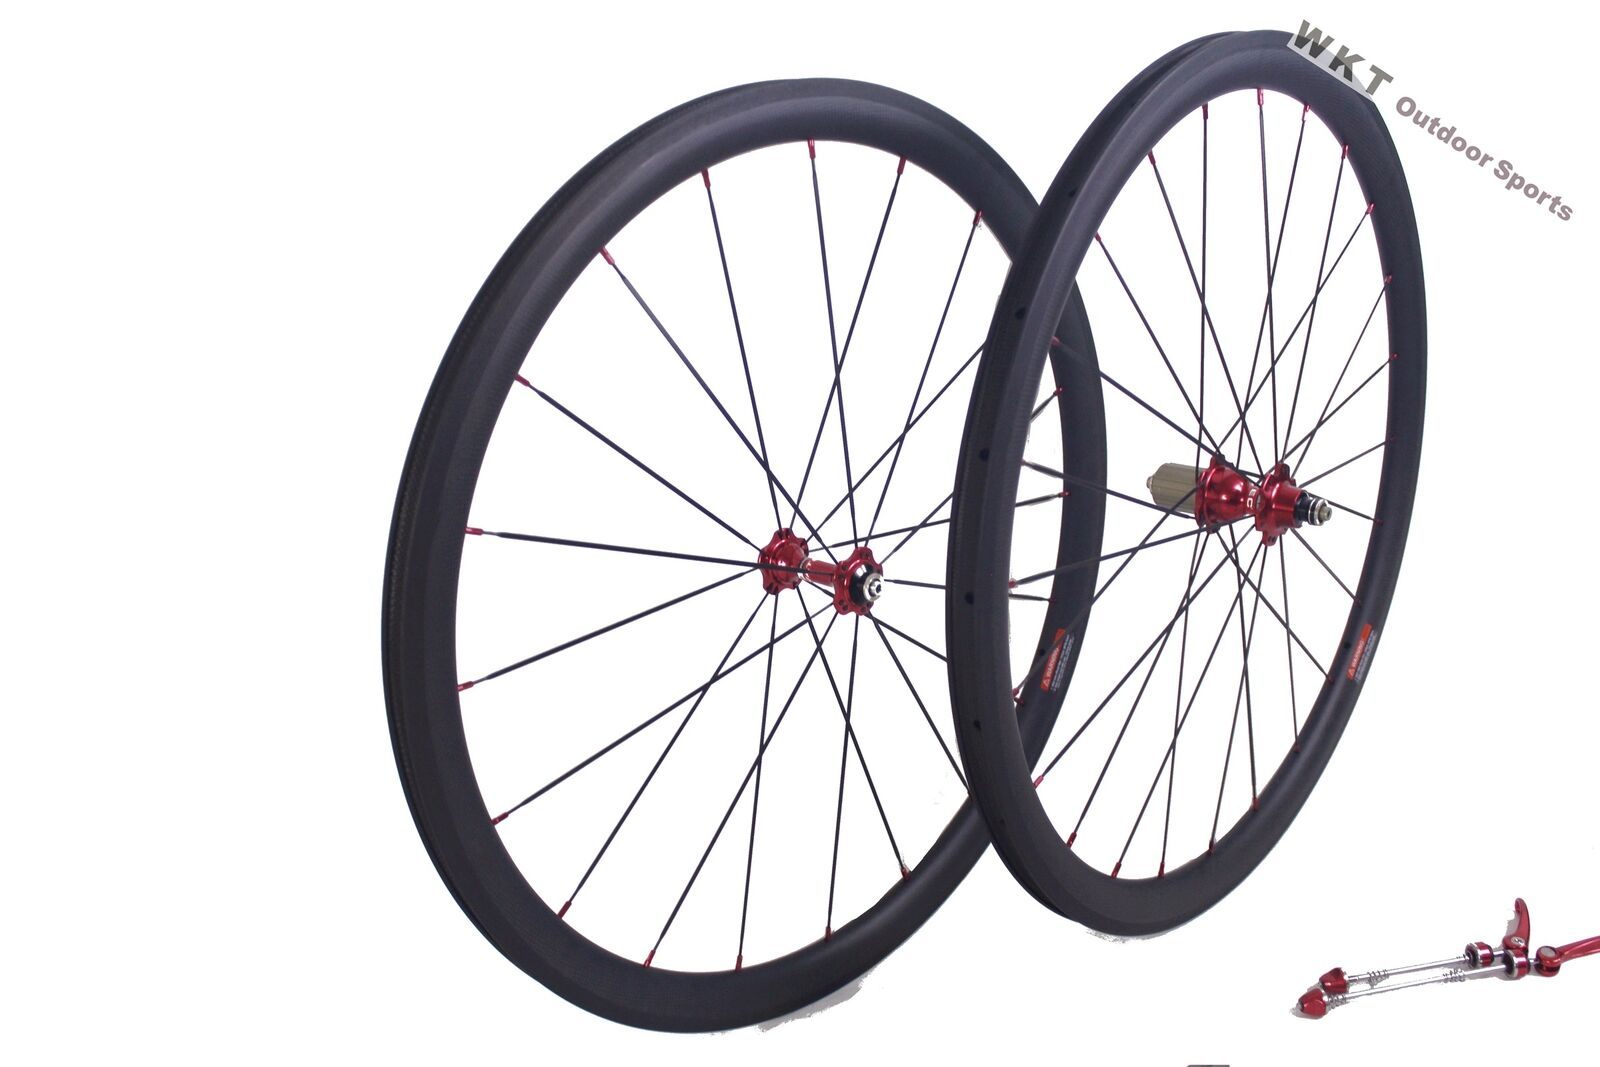 38mm Carbon Wheels 700C Clincher 25mm Width  Wheel set  Road Race Bicycle Wheel